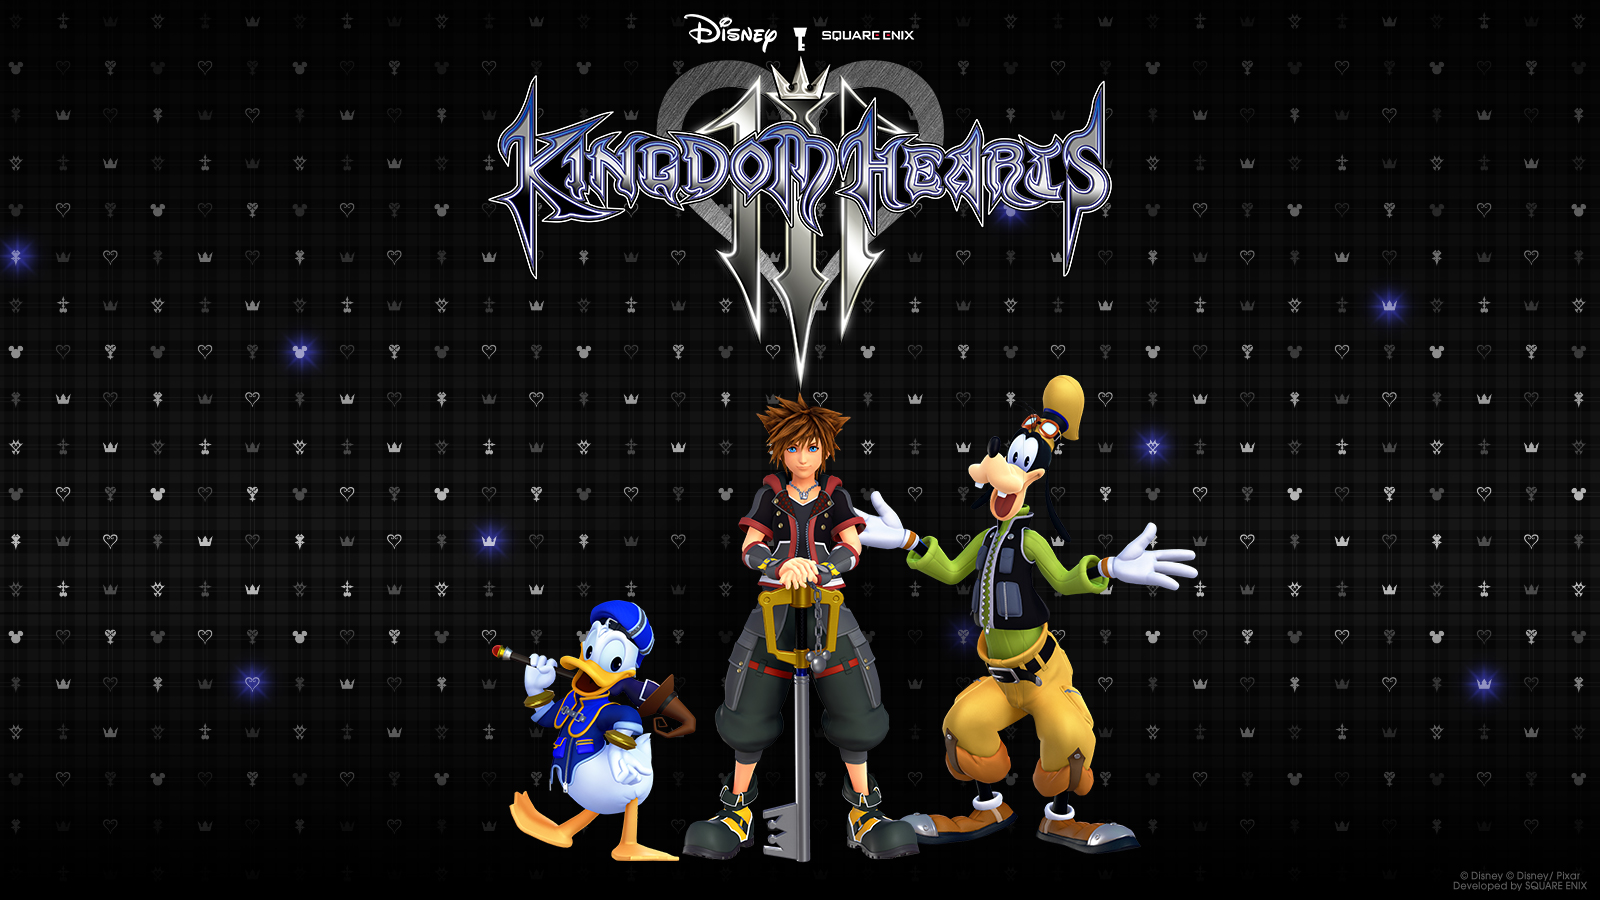 Game Director Tetsuya Nomura Confirms Development On Kingdom Hearts III Is Complete; New Trailer Released